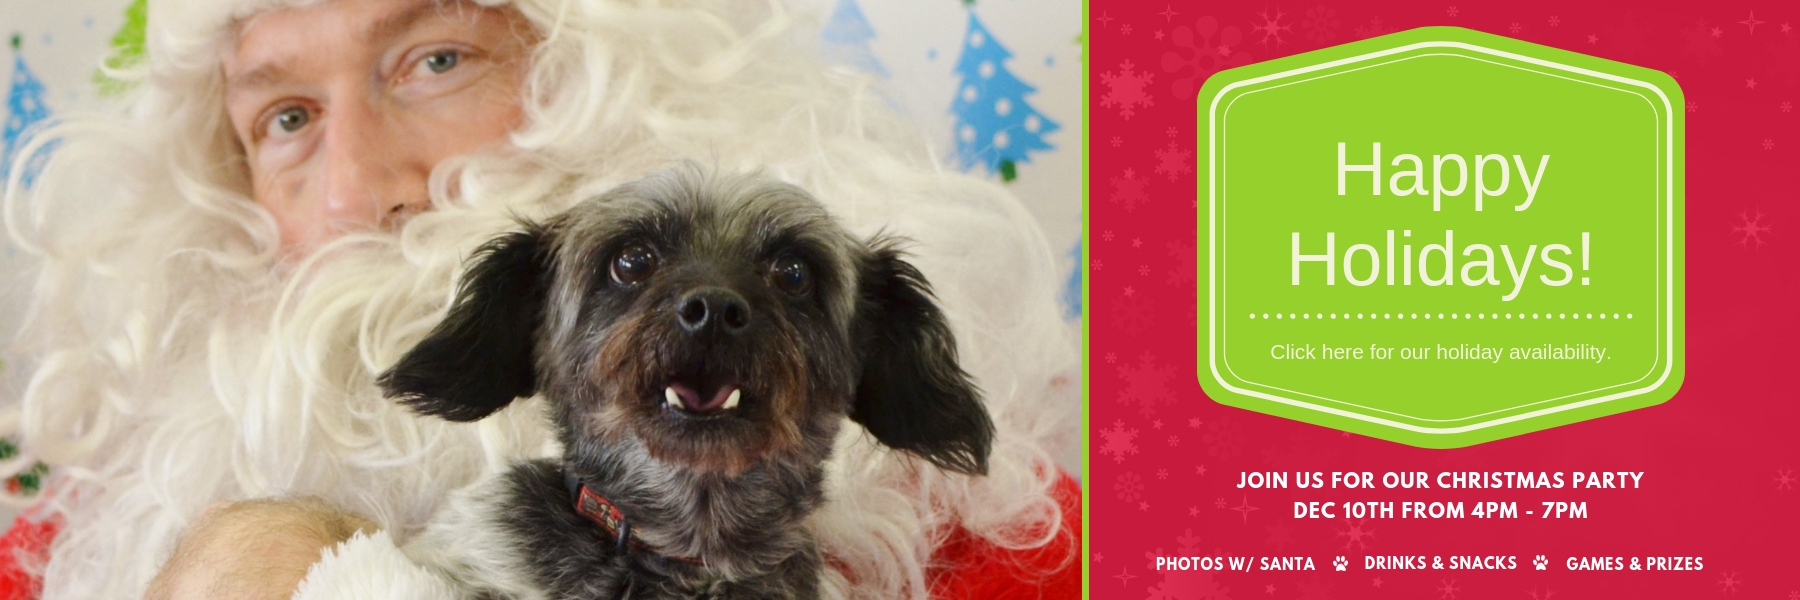 especially 4 pets holiday banner